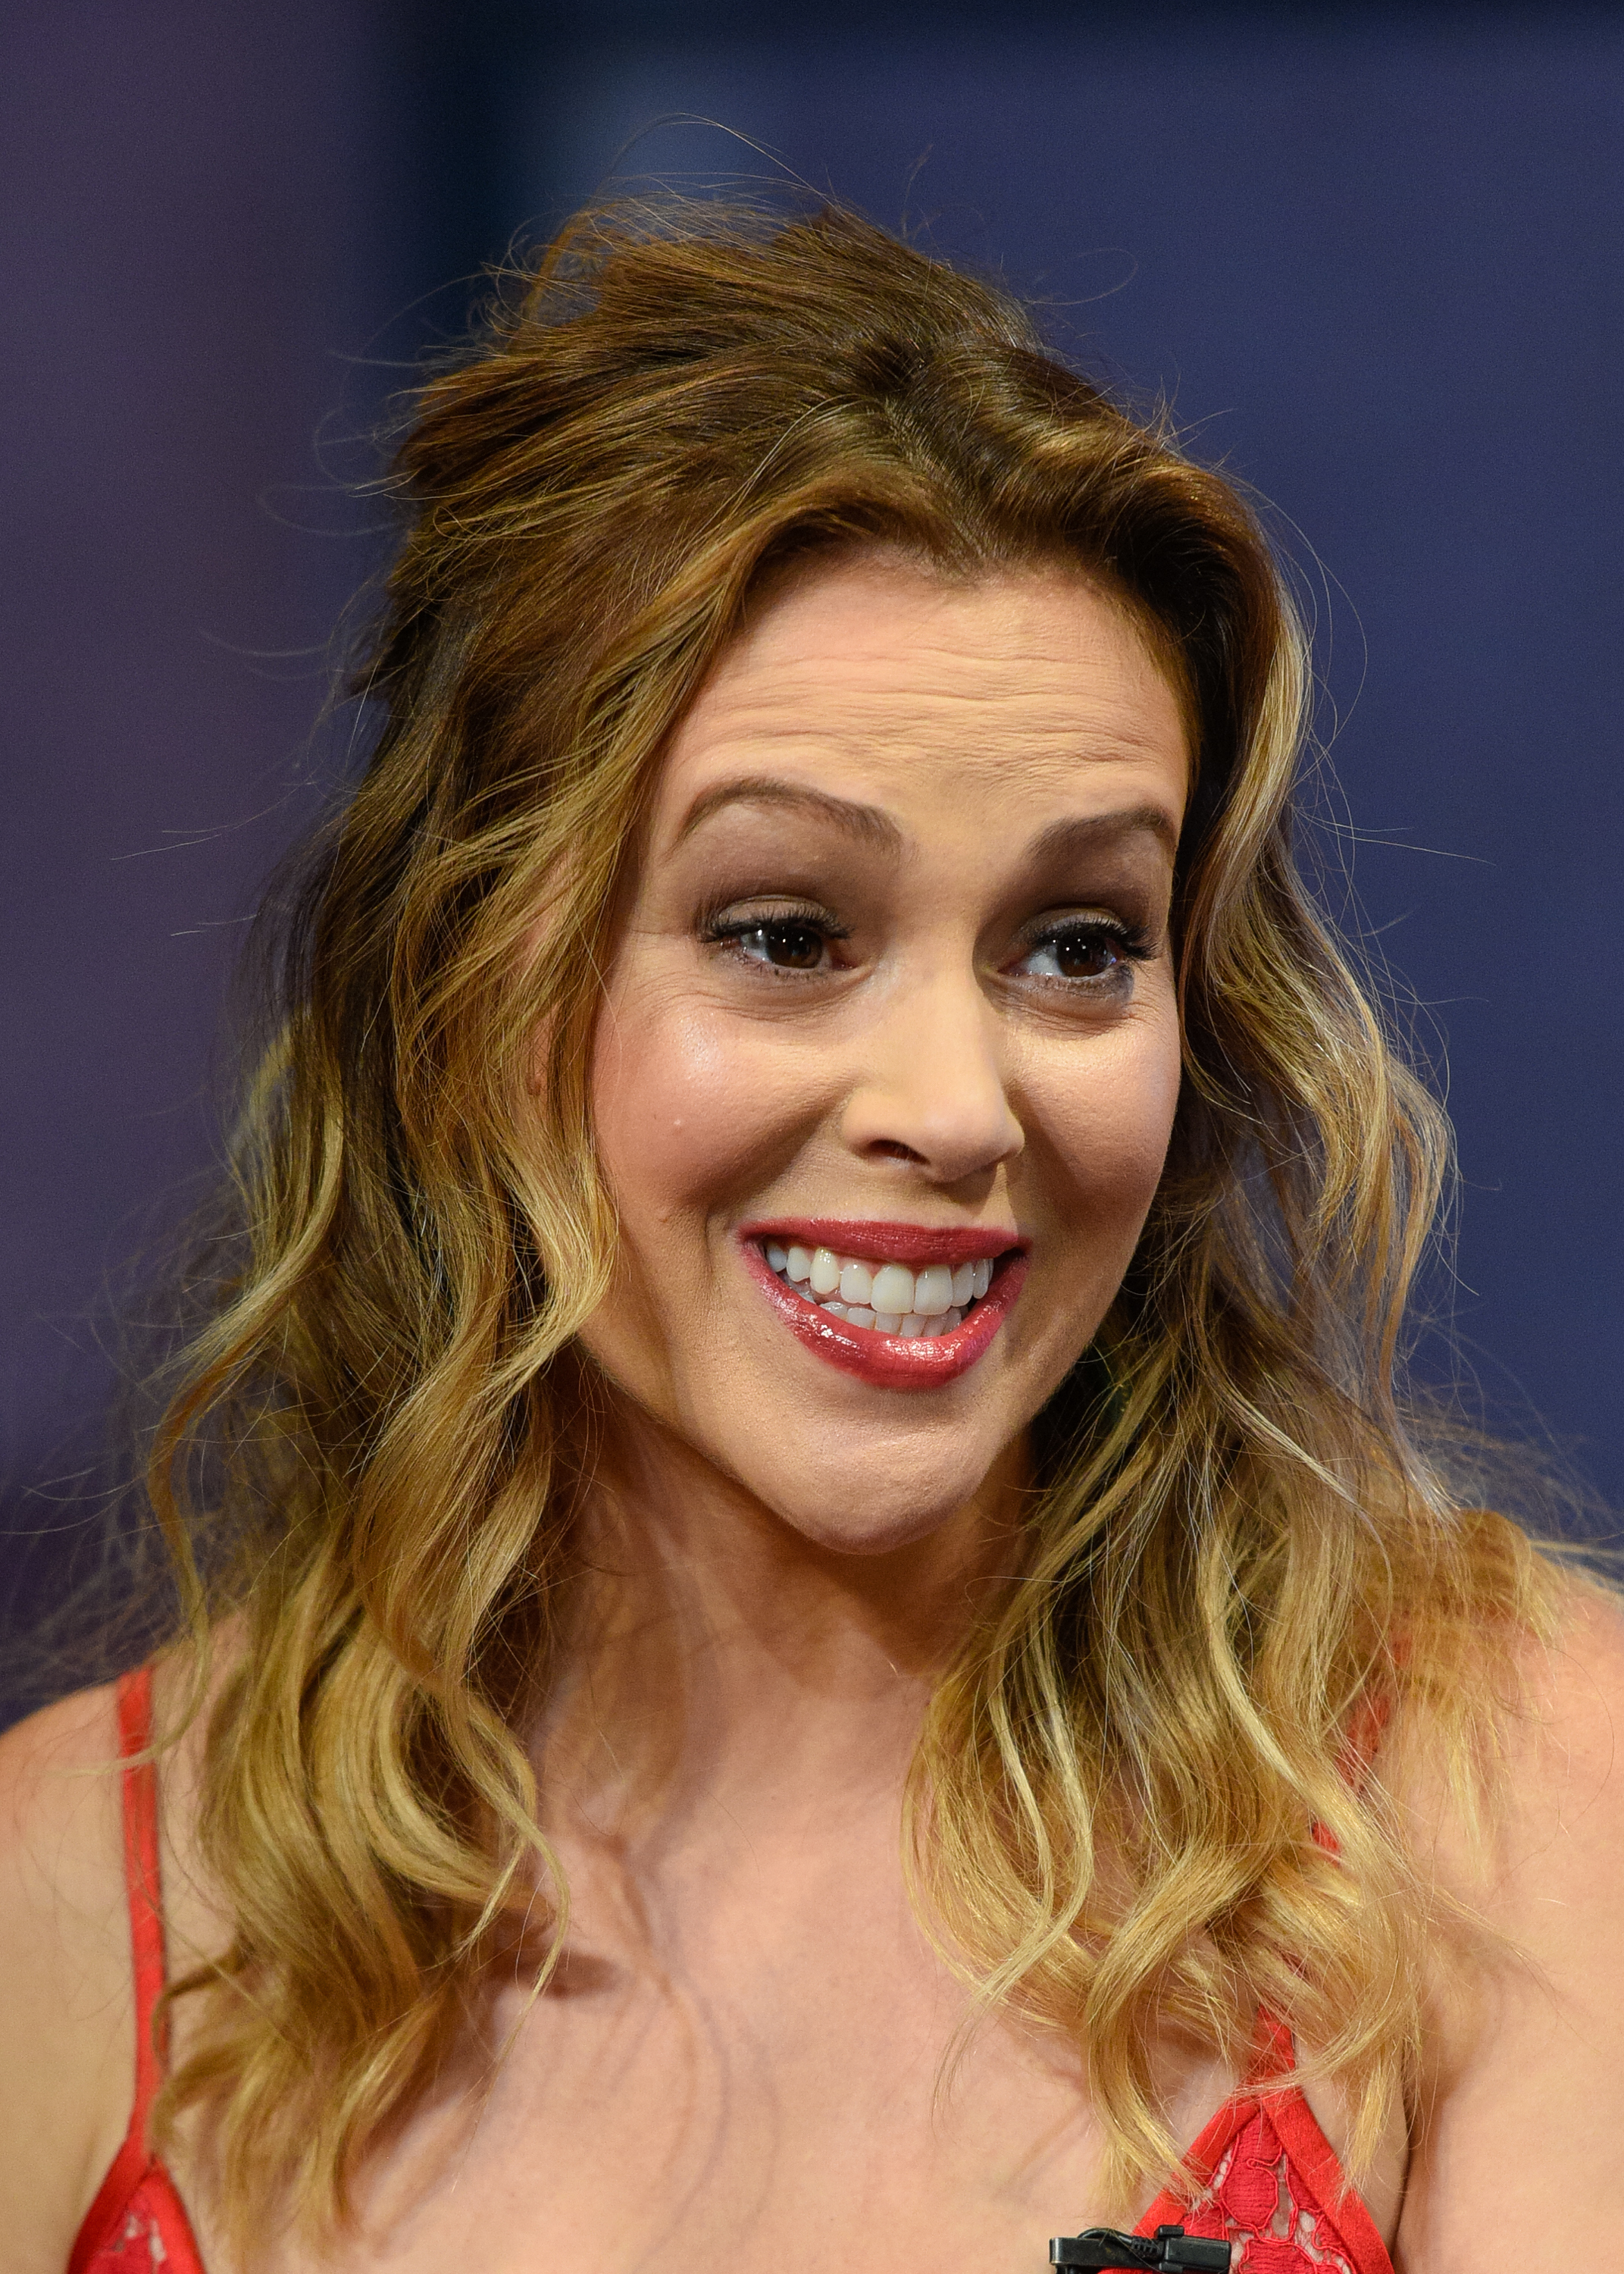 Alyssa Milano in Universal City, Calif, Sept. 8, 2015.